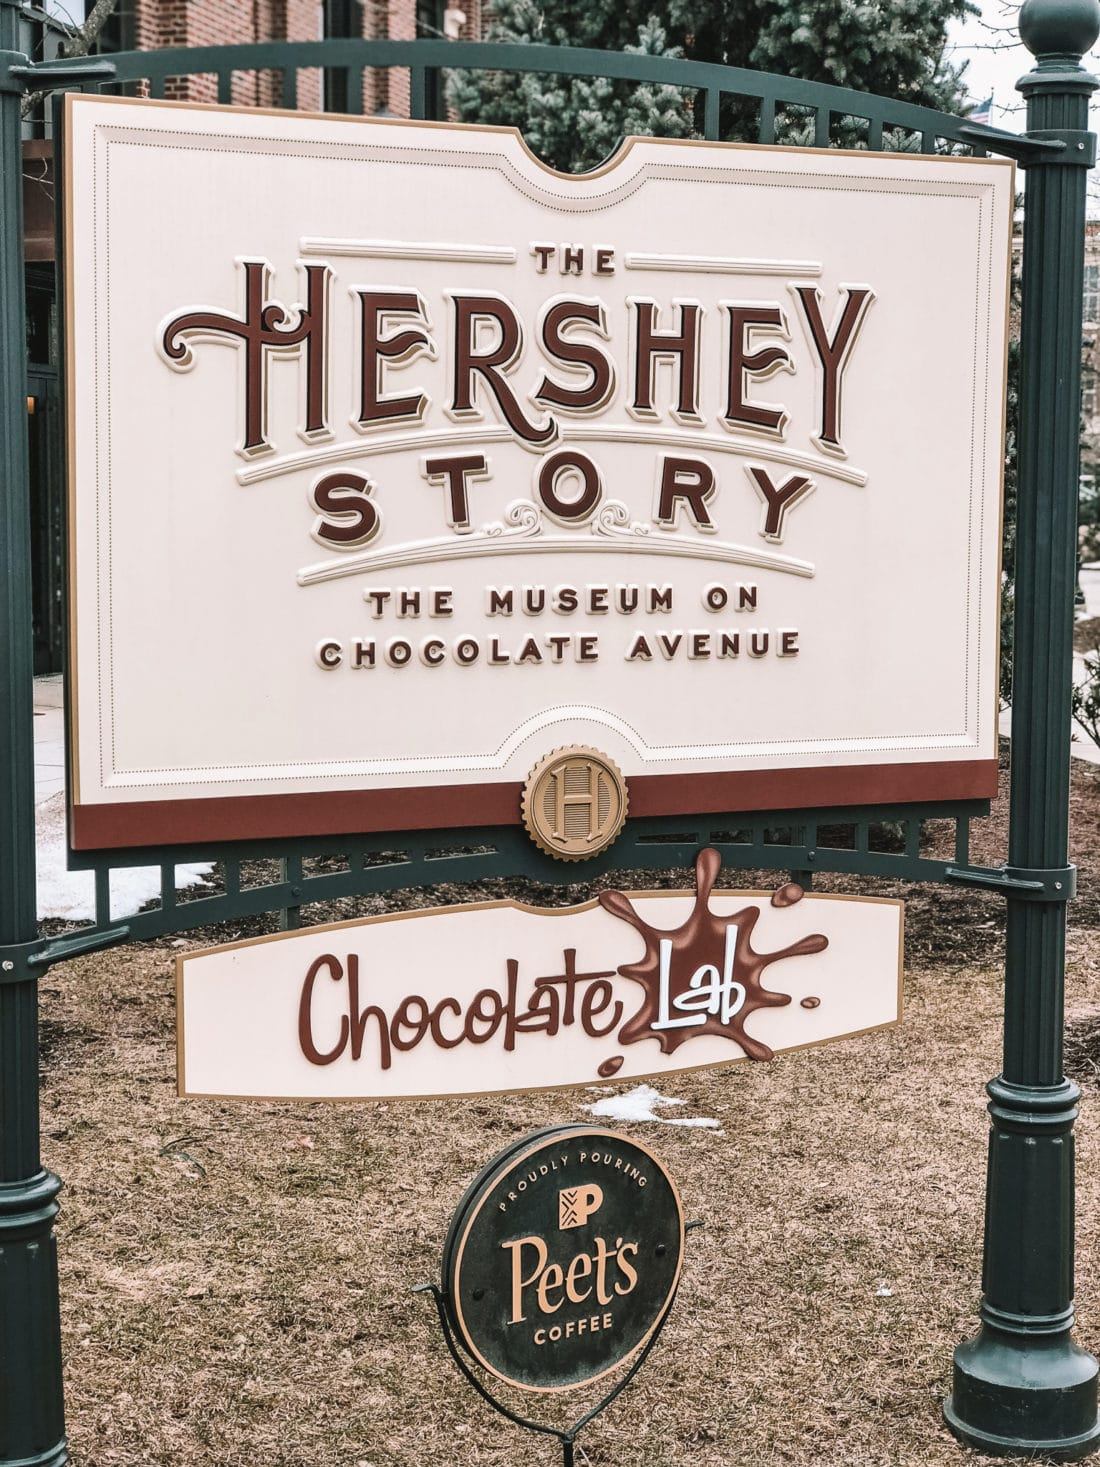 Hershey Story Museum Sign. Hershey Story Museum Sign. Stop by the Hershey Story Museum in Hershey, PA to learn more about the most iconic chocolate empire.